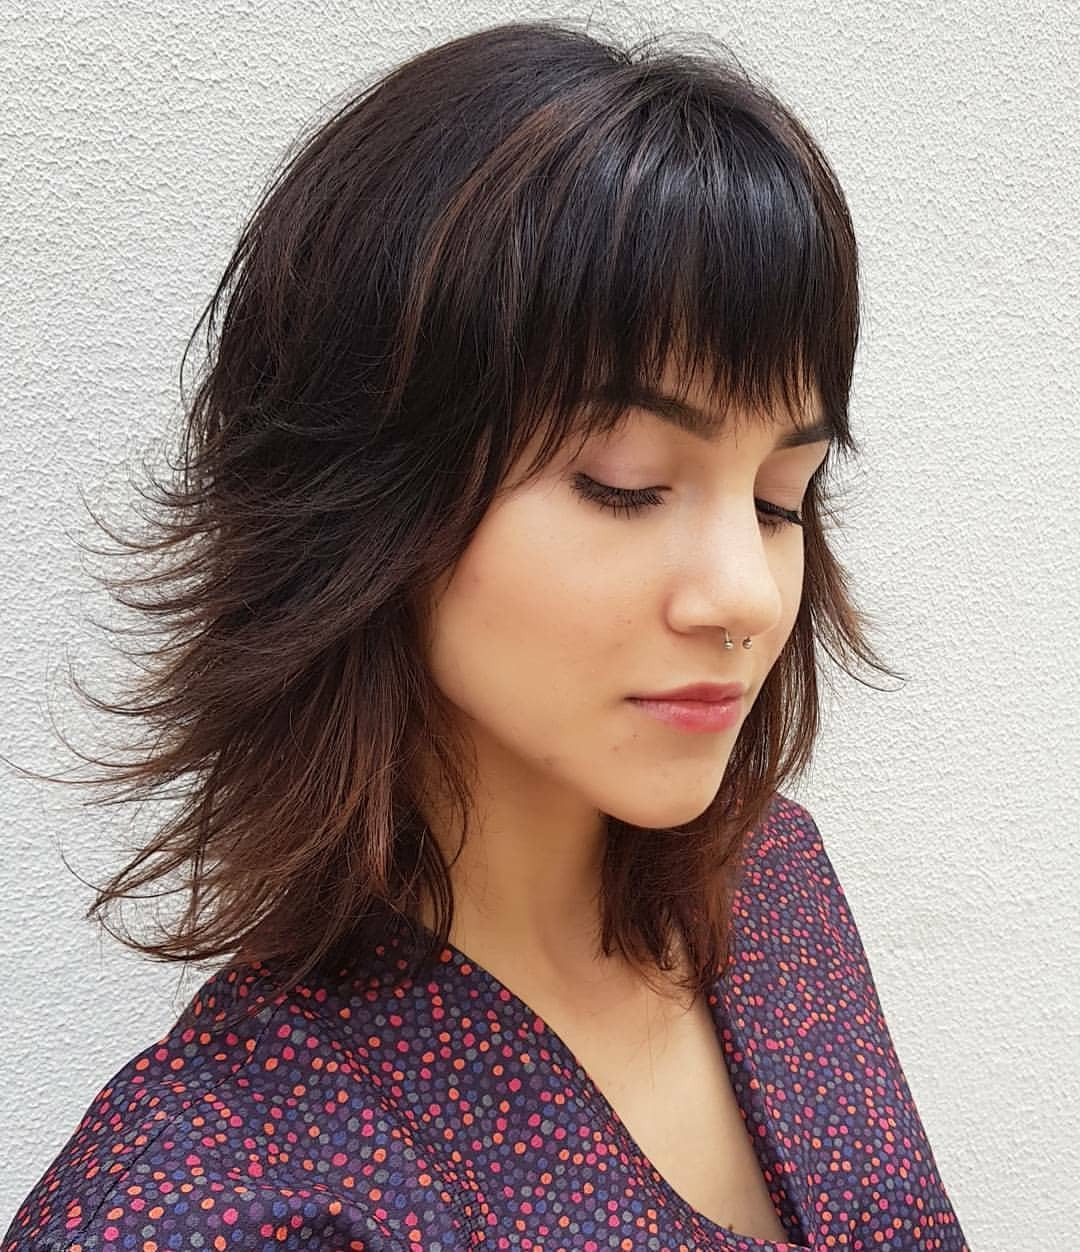 Best ideas about Cute Hairstyles For Women . Save or Pin 10 Super Cute and Easy Medium Hairstyles 2019 Now.